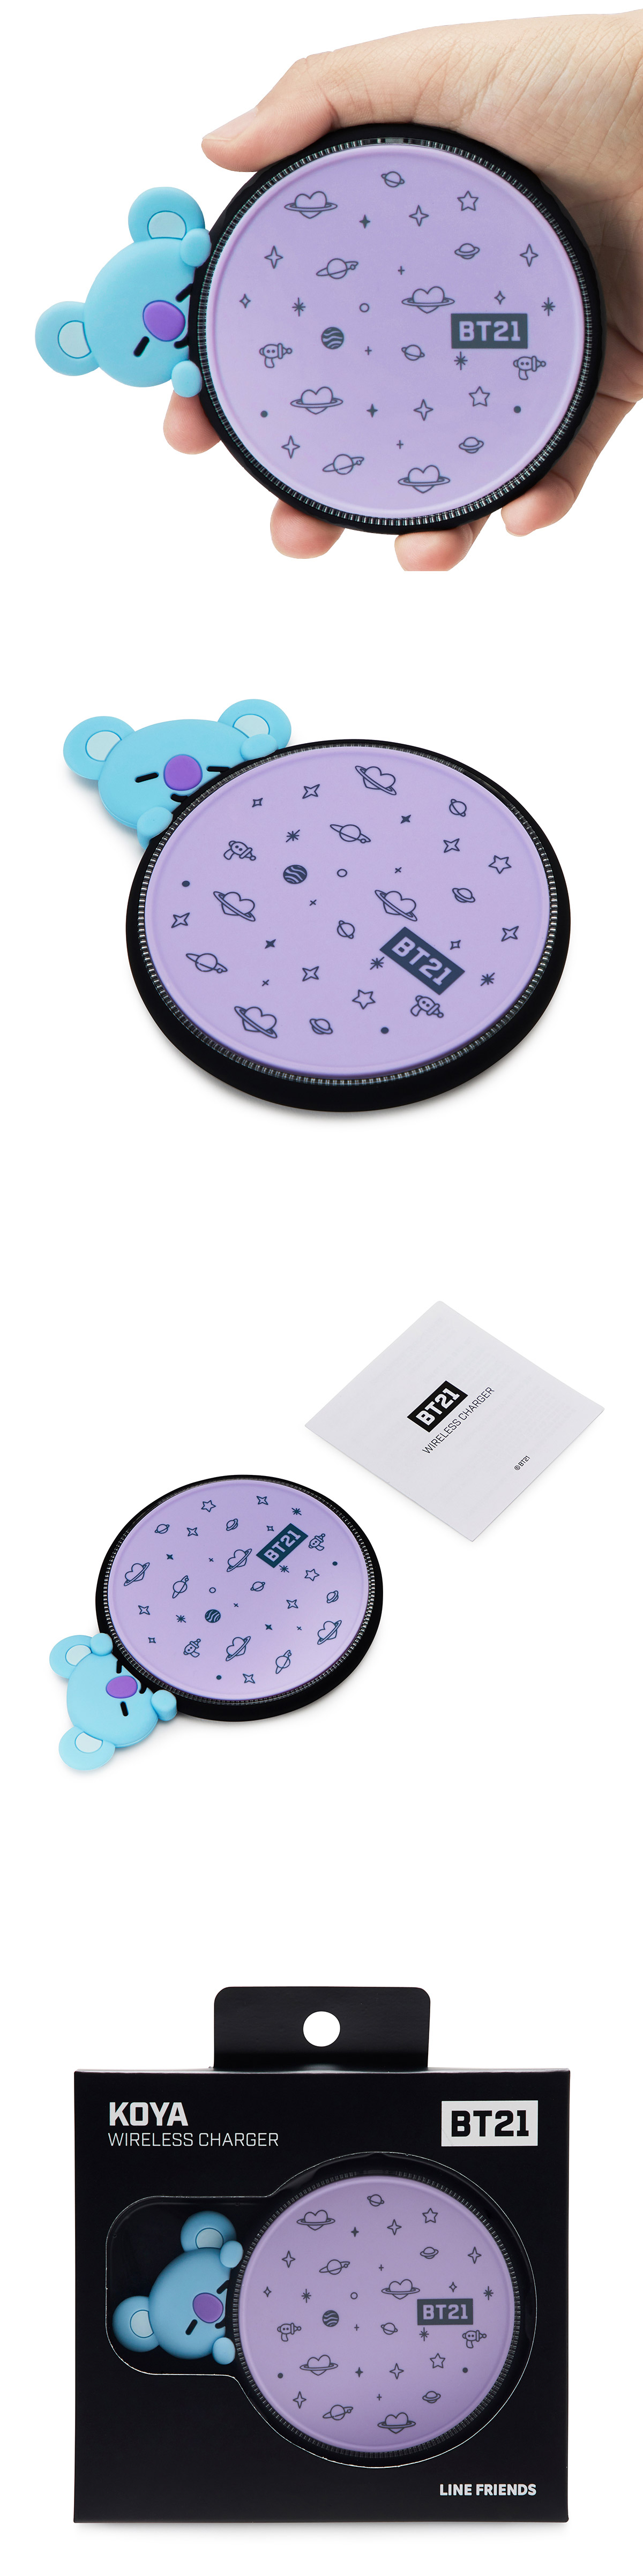 bt21_wireless_charger.jpg